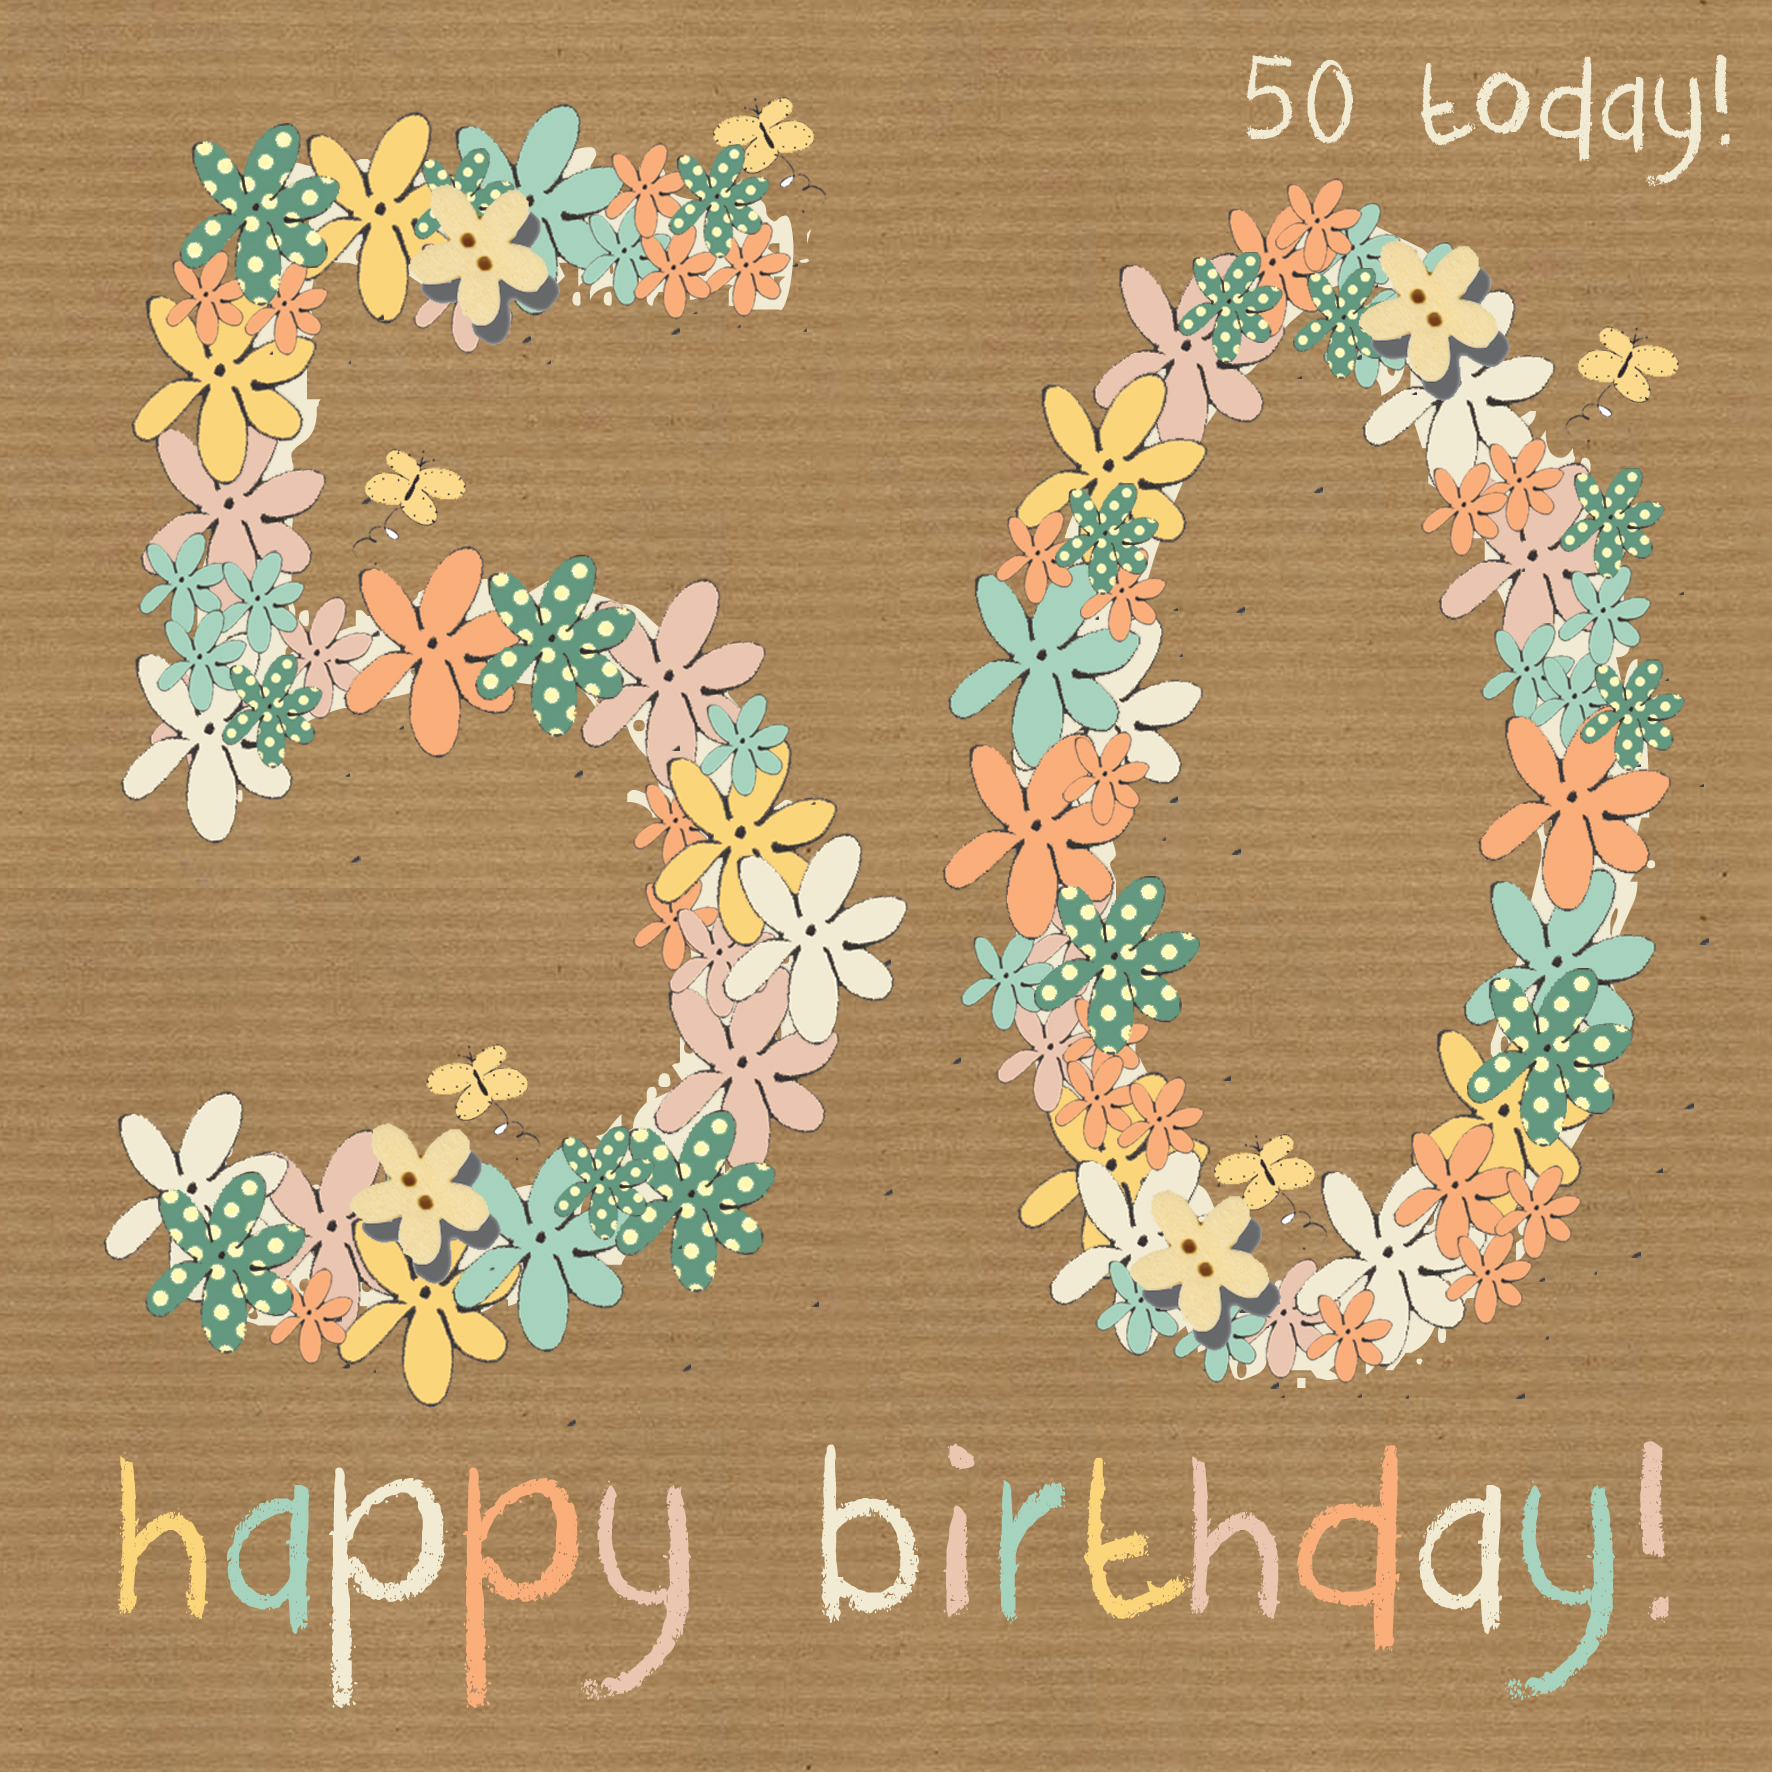 buy age cards online karenza paperie 18, 21, 30, 40, 50, 55, 60, 65, 70, 75, 80, 85, 90, 95, 100